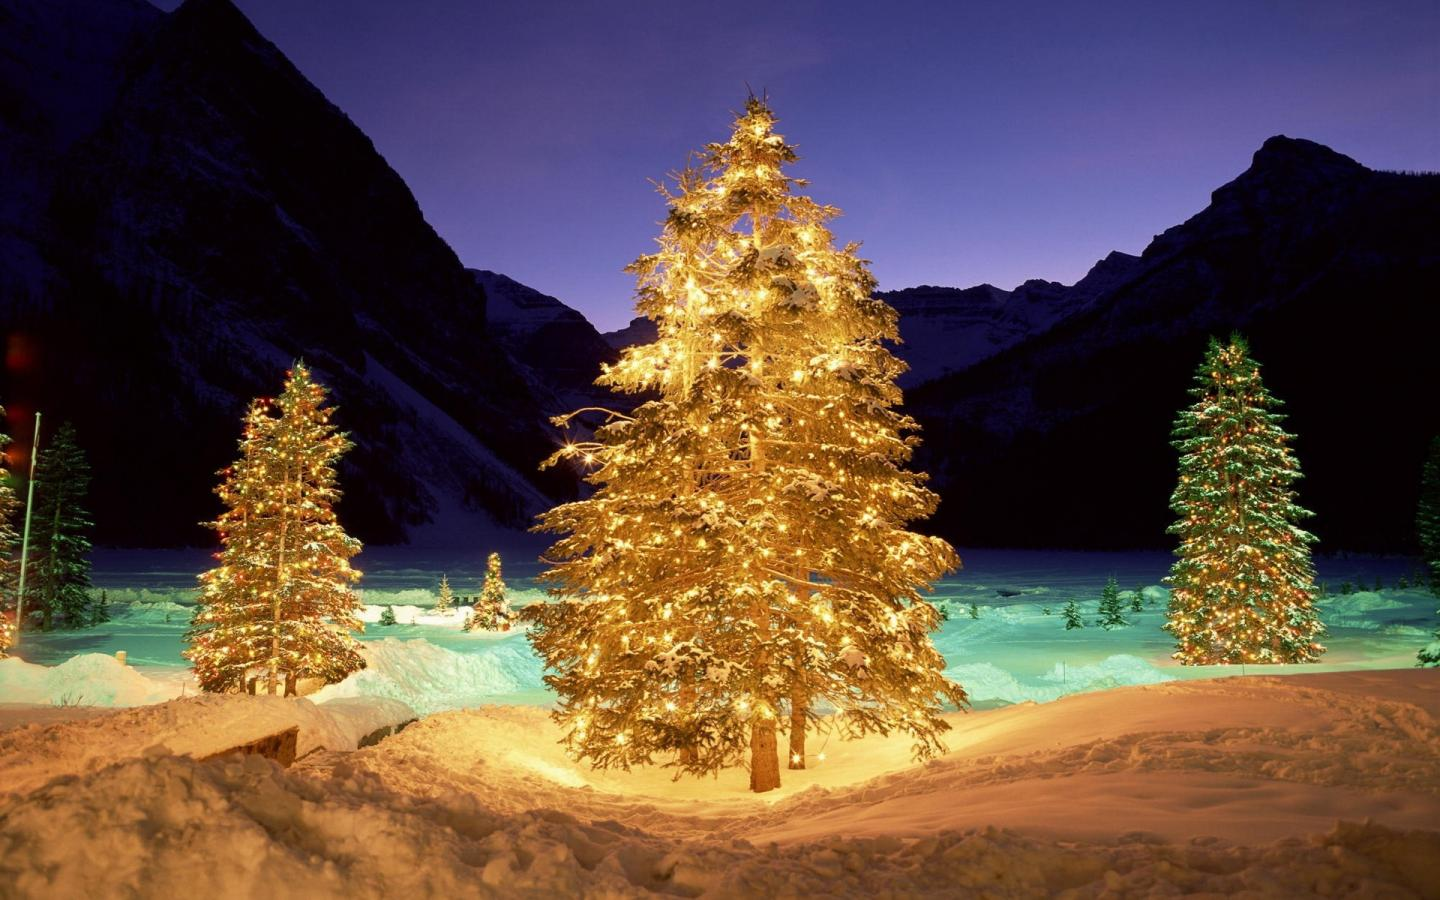 Christmas Tree Wallpaper Widescreen 9314 Hd Wallpapers in Celebrations 1440x900